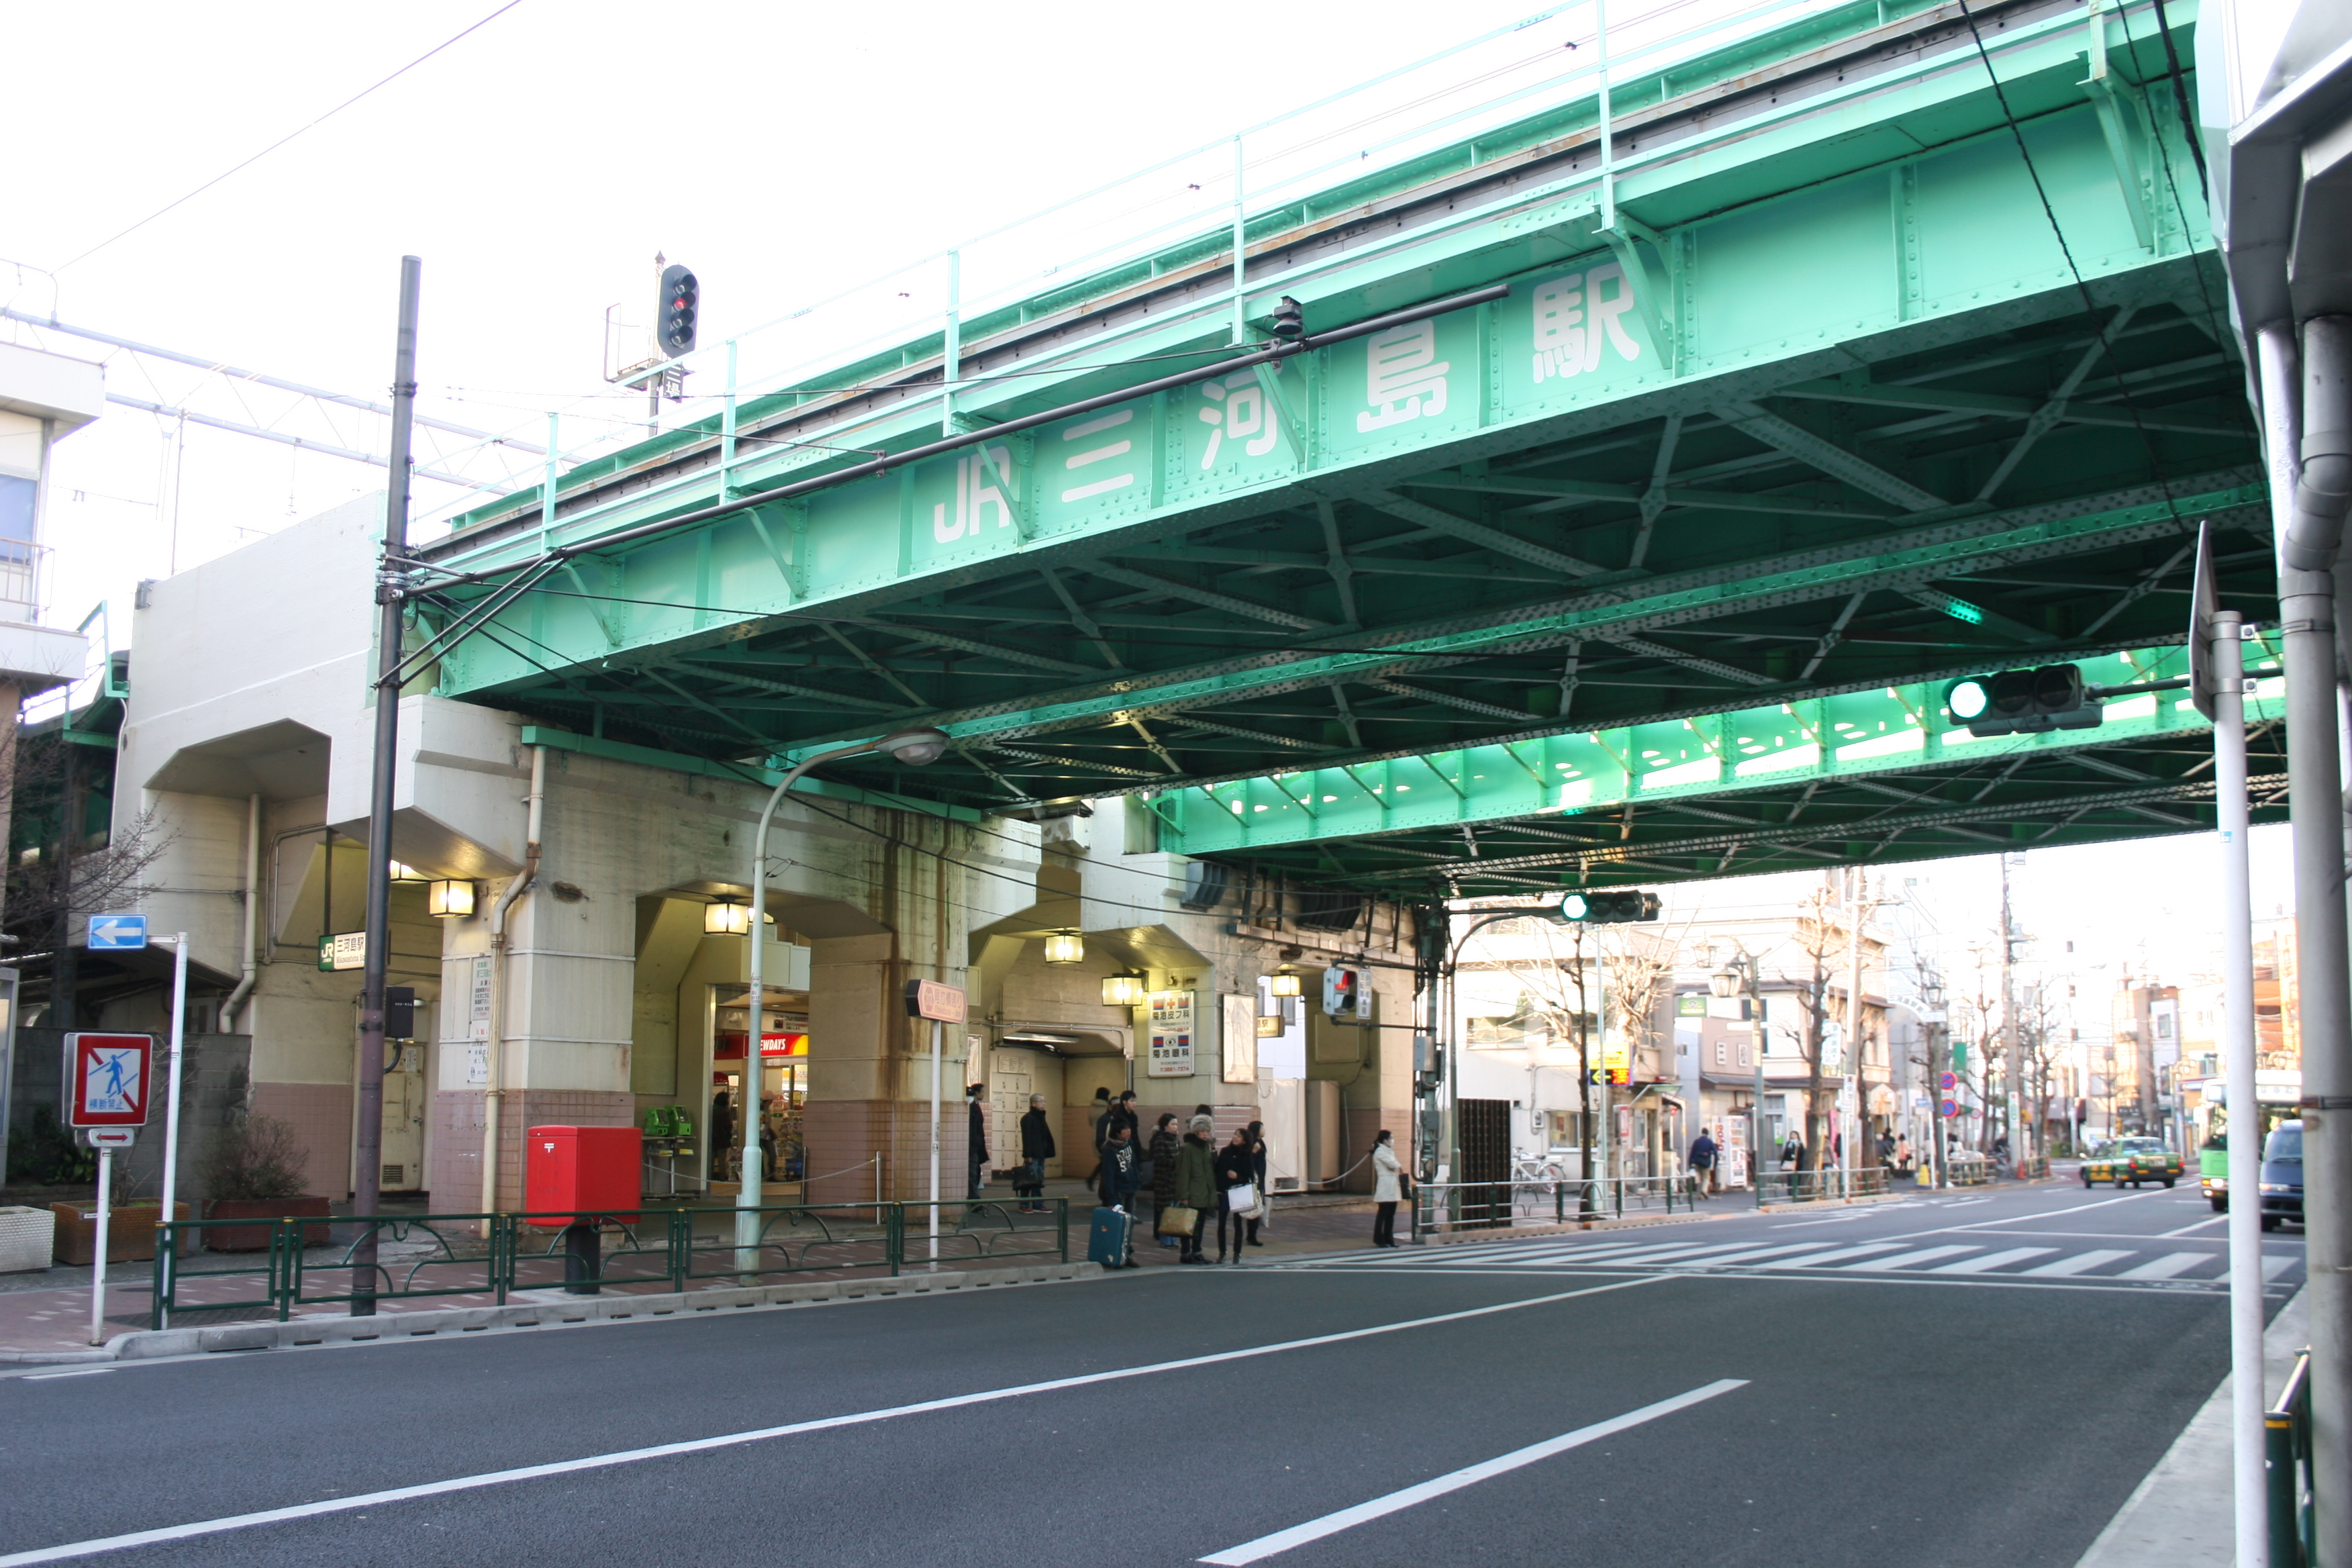 https://upload.wikimedia.org/wikipedia/commons/d/d8/Mikawashima_Station_across_road.jpg